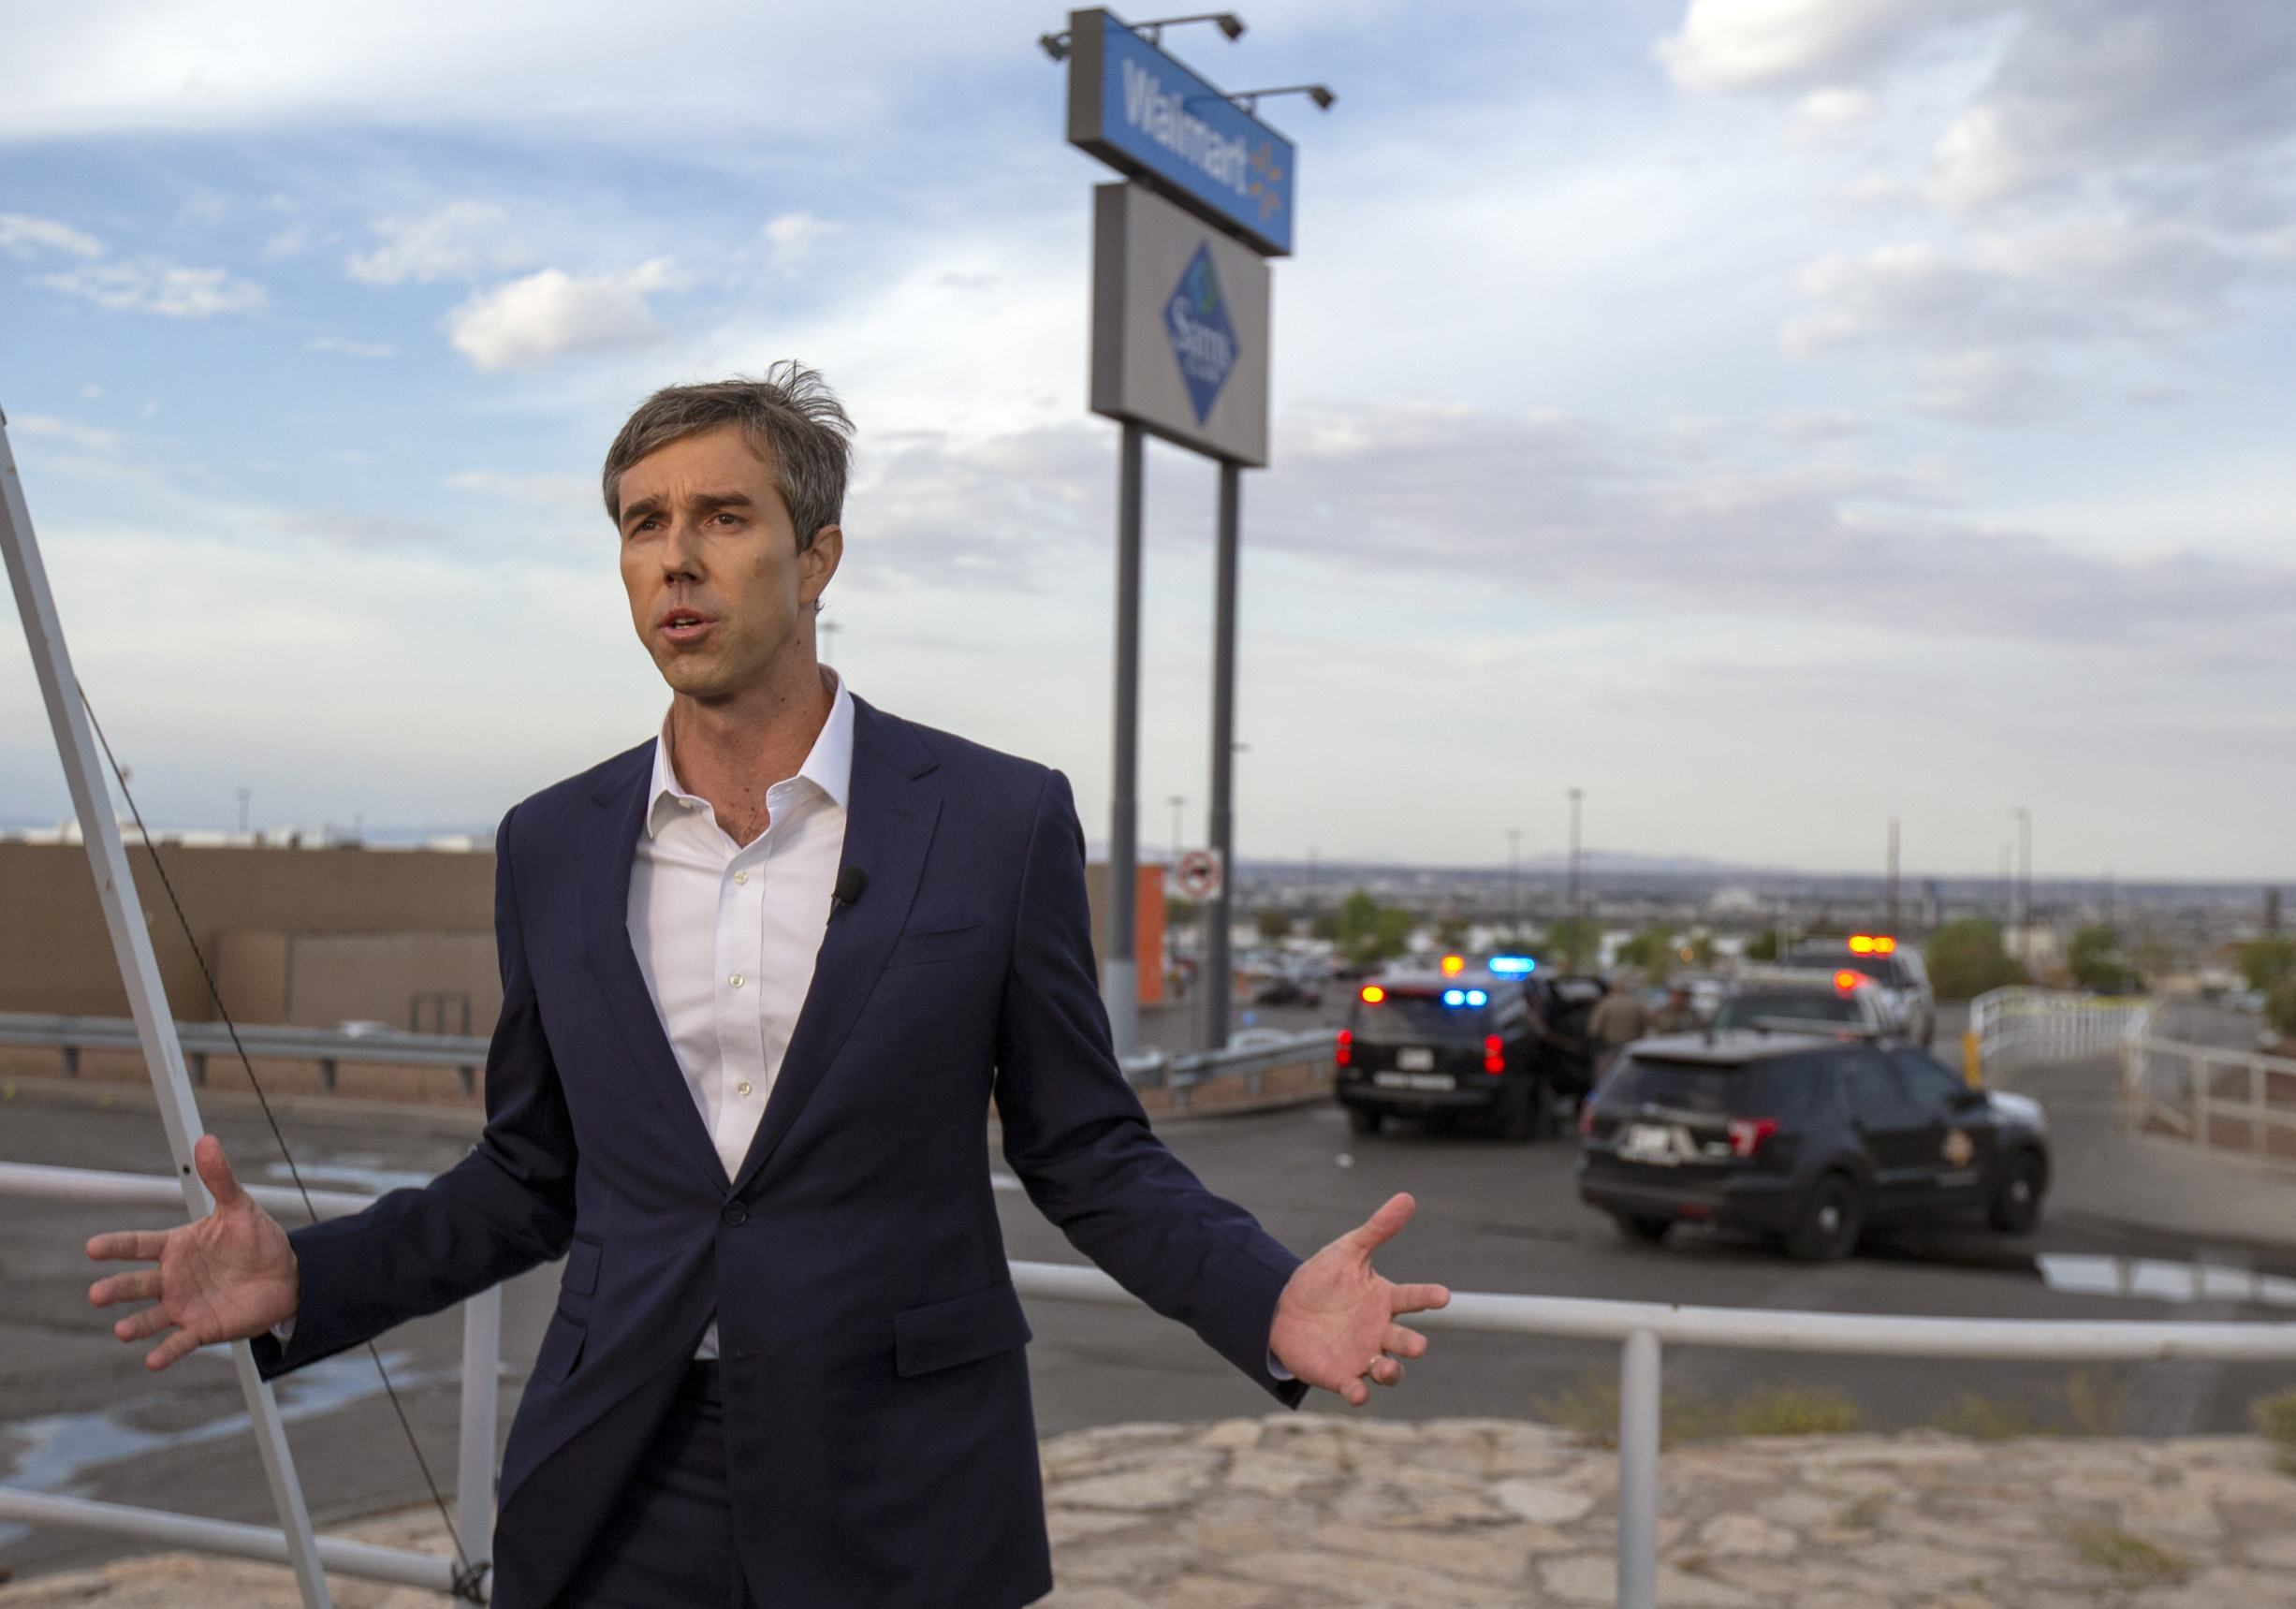 Fact-checking Beto O'Rourke on murders in El Paso after mass